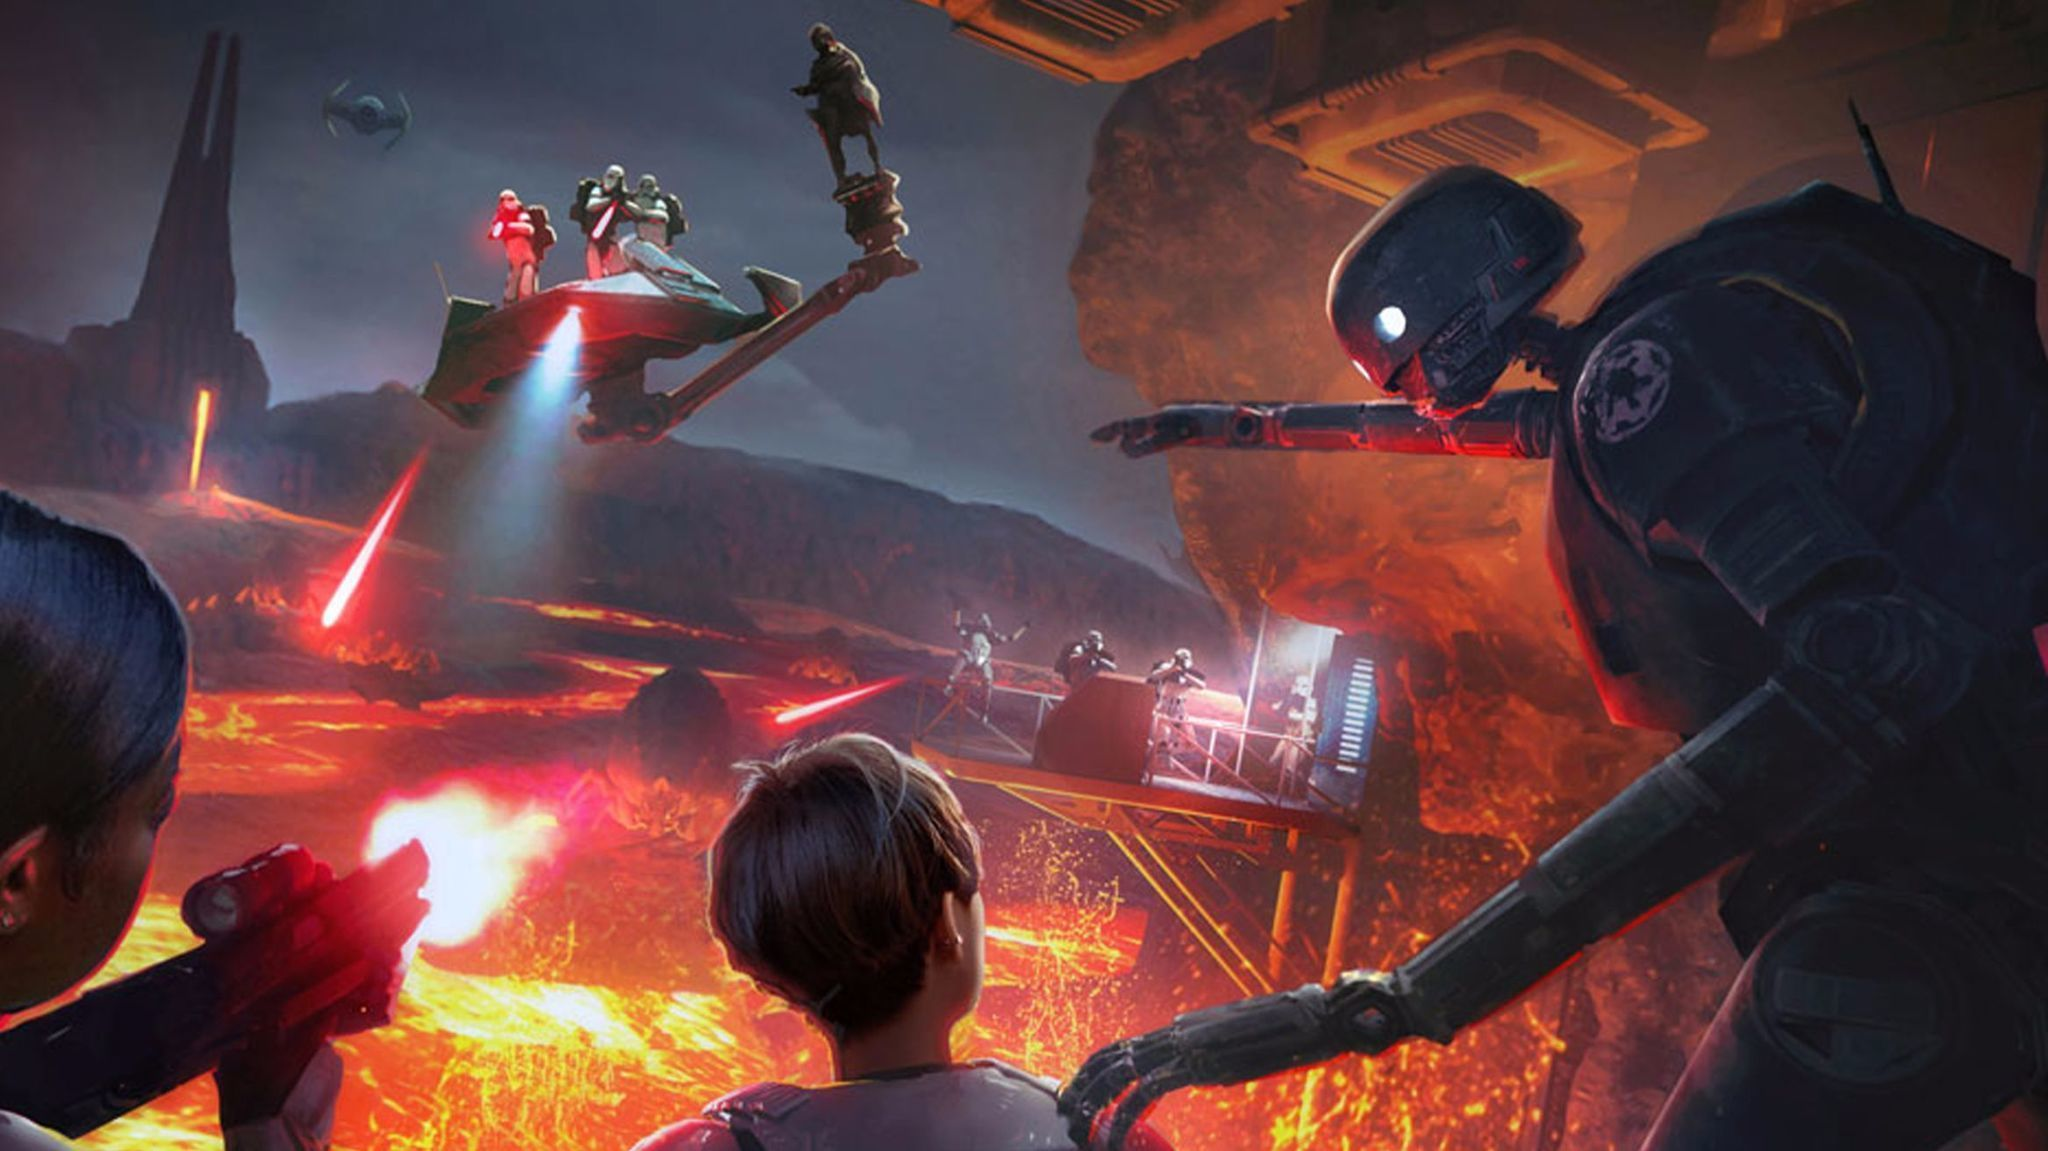 star wars virtual reality attraction to open at downtown disney this year la times - Free Disney Games For 4 Year Olds